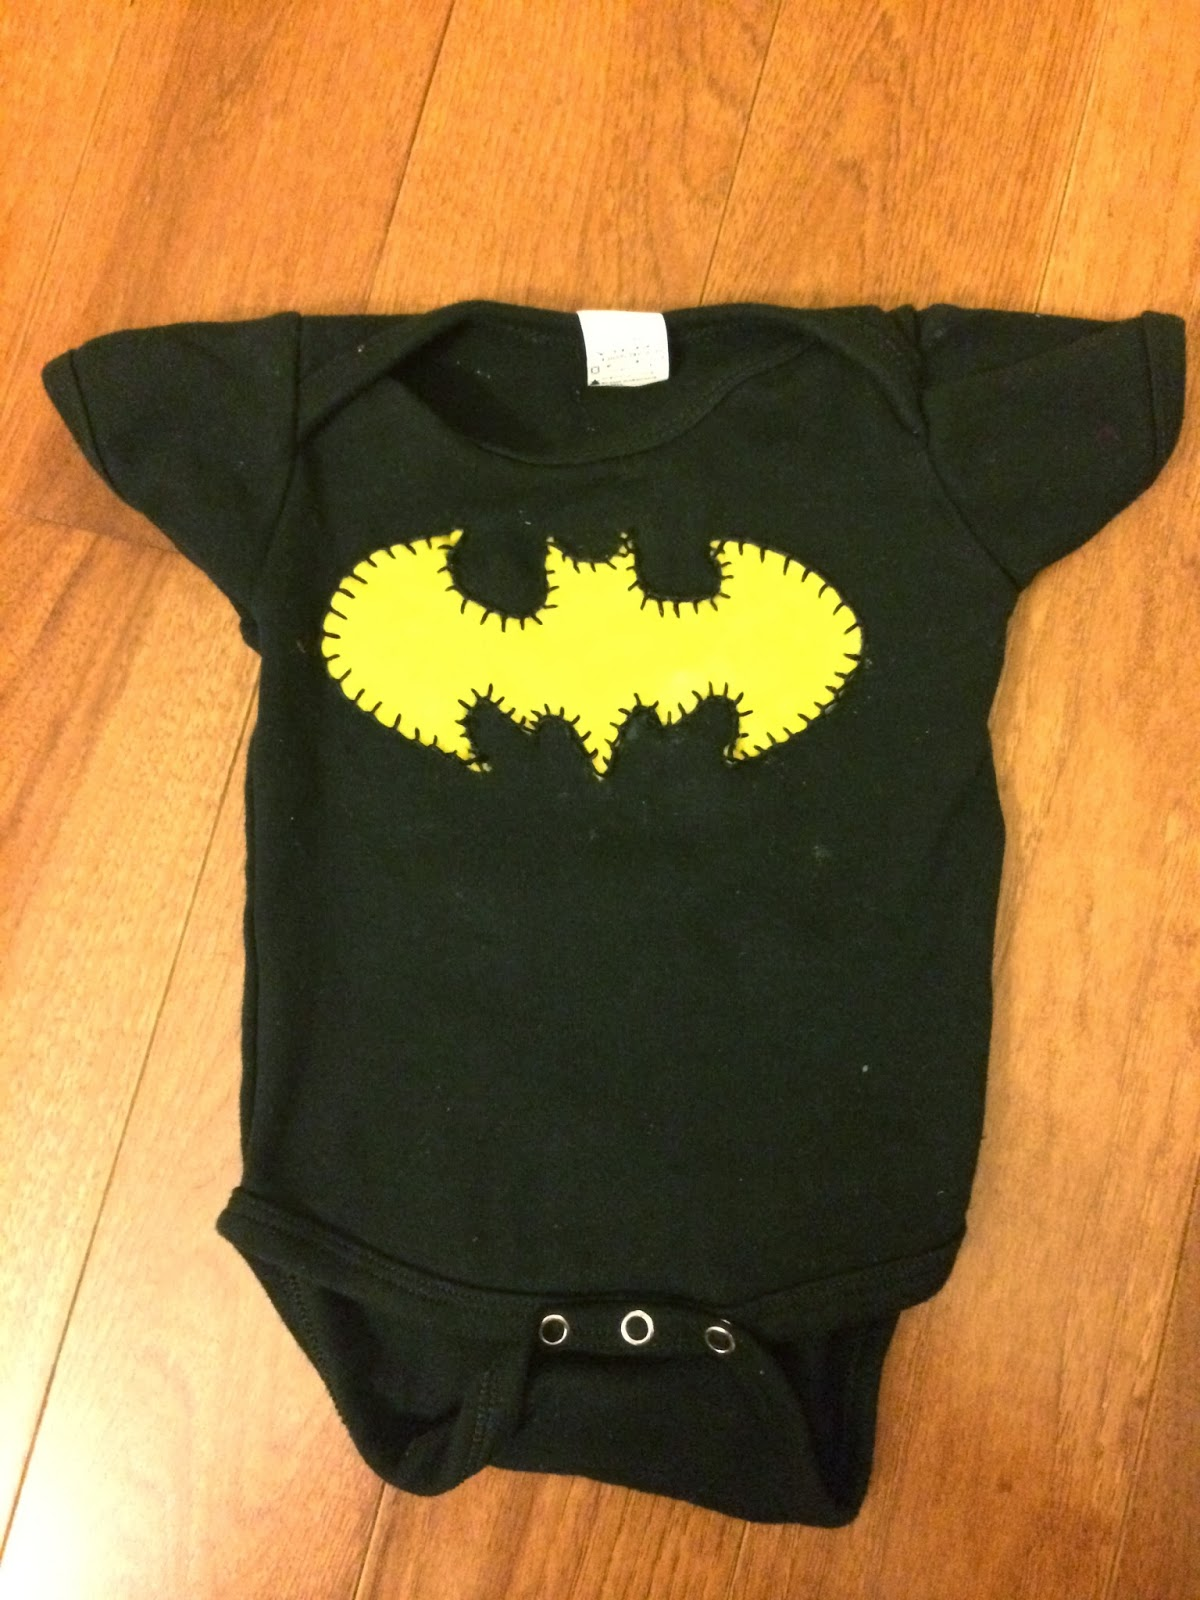 Handmade Batman onesie for baby boy - felt applique